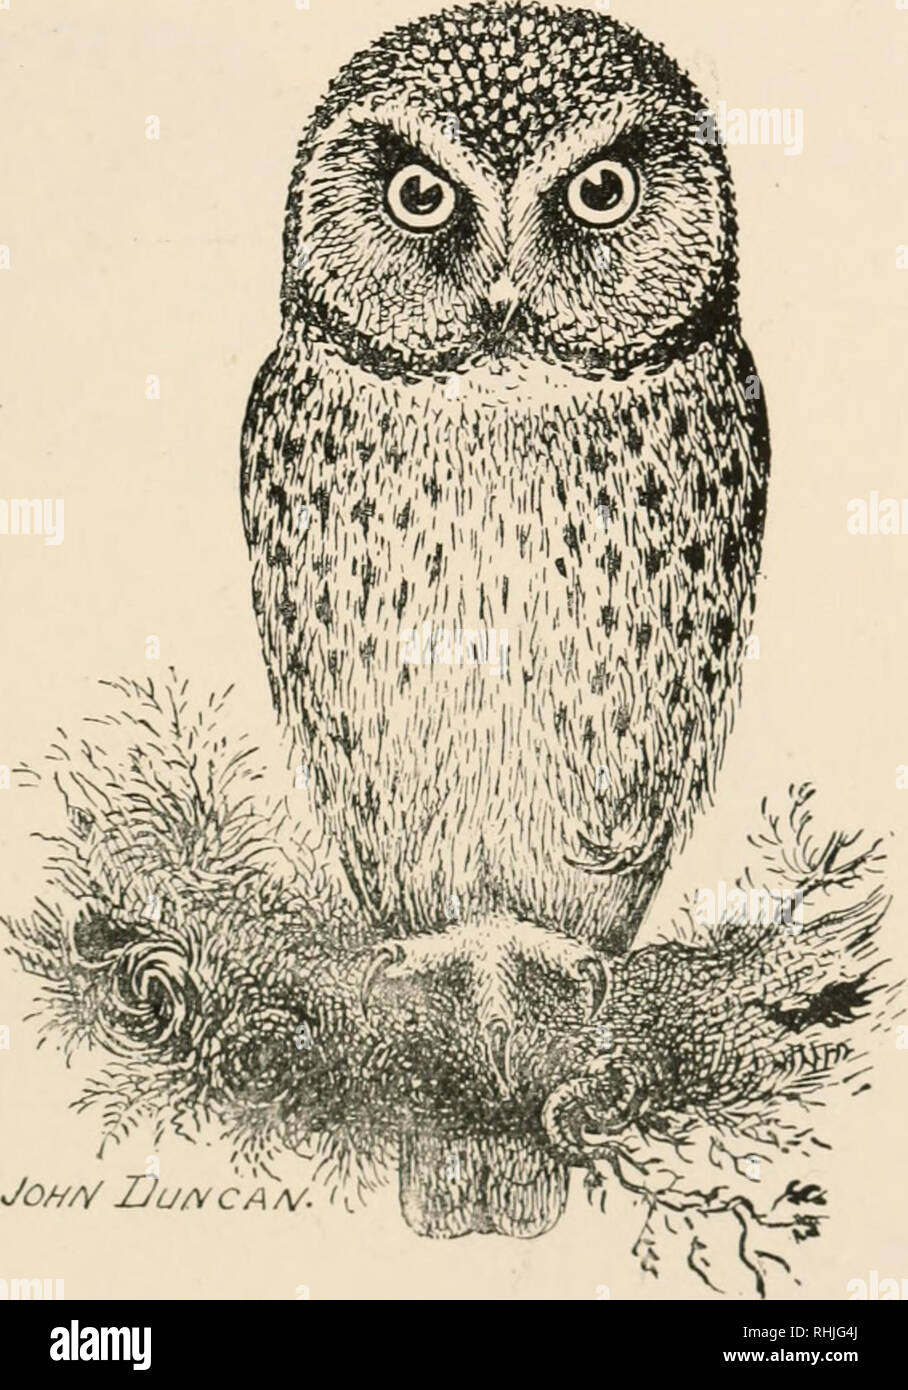 . Birds of the British Isles. Birds -- Great Britain; Birds -- Ireland. BIRDS OF THE BRITISH ISLES. Xlttle ®wl 163. JOH/V 2Ju/v CA/V.'^ The Little Owl (^Athene ?iociiia, Scopoli) is a rare abnormal migrant to the British Islands, and is; a resident in Europe south of Scandinavia. The adult has the upper parts of the plumage greyish-brown; back and wings, spotted with white; head, striped with white; tail, barred with white and tinged with rusty; under parts, white, with broad streaks of brown ; irides, yellow; bill, yellowish ; the toes have a covering of hairy bristles. Length, about eight in - Stock Image